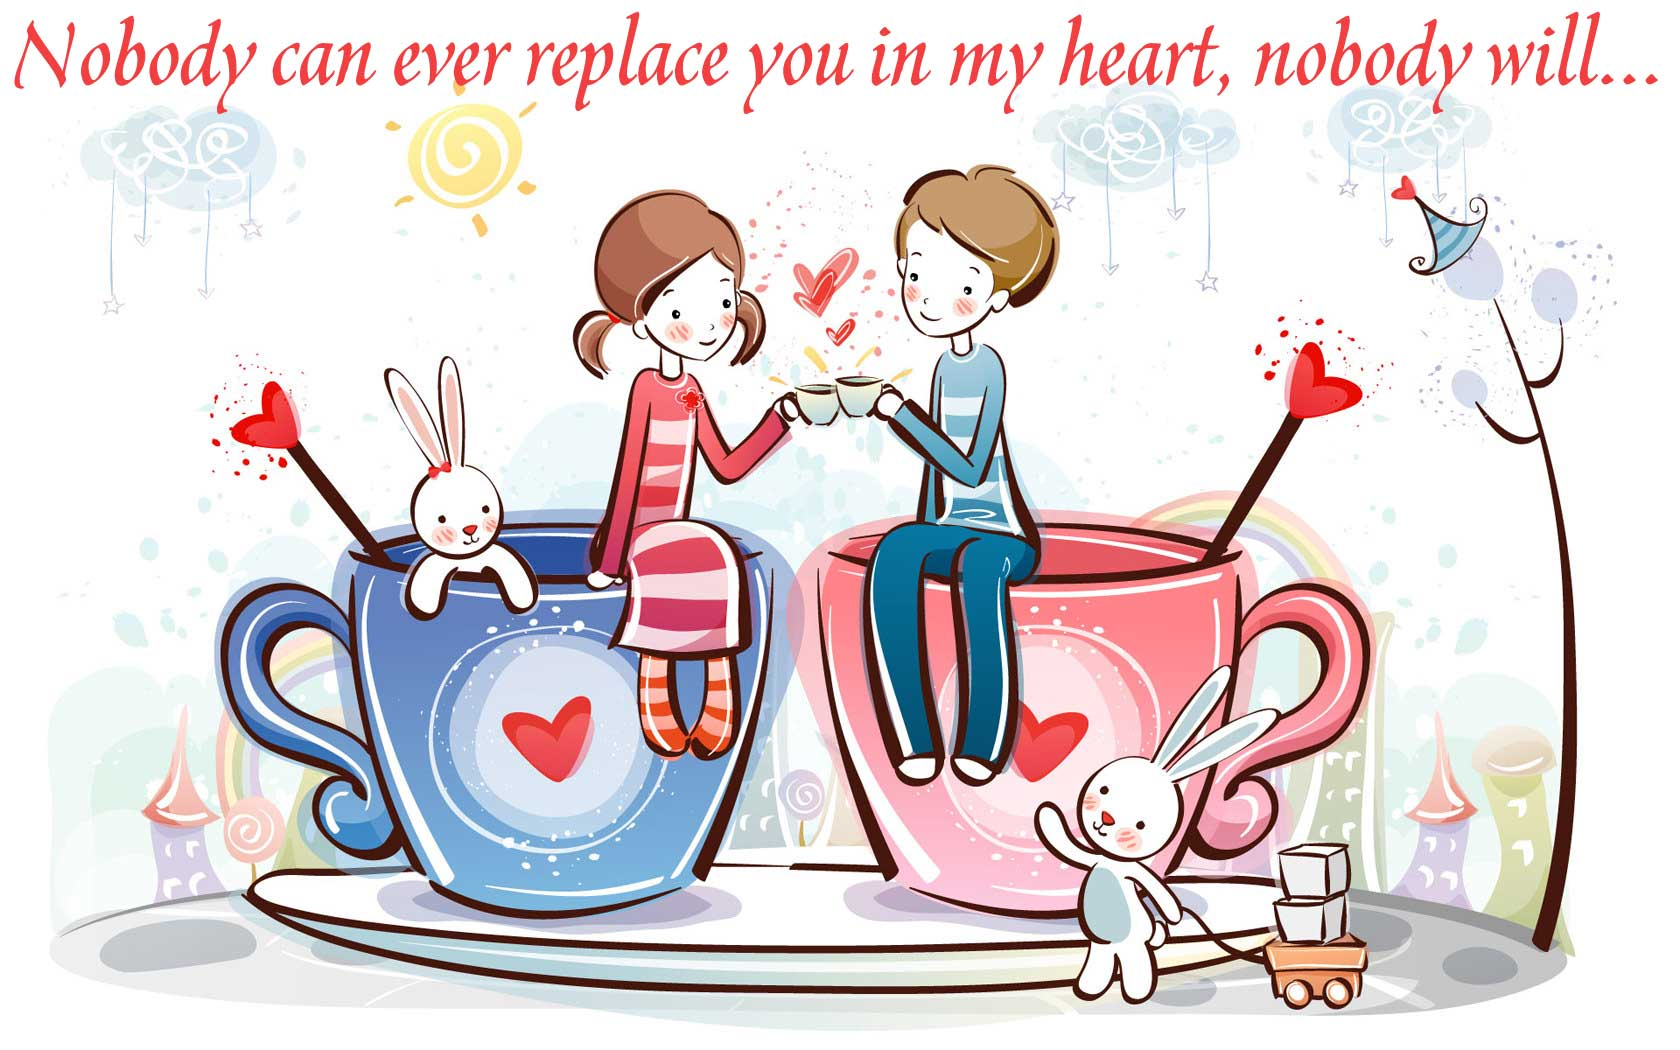 Nobody can replace you